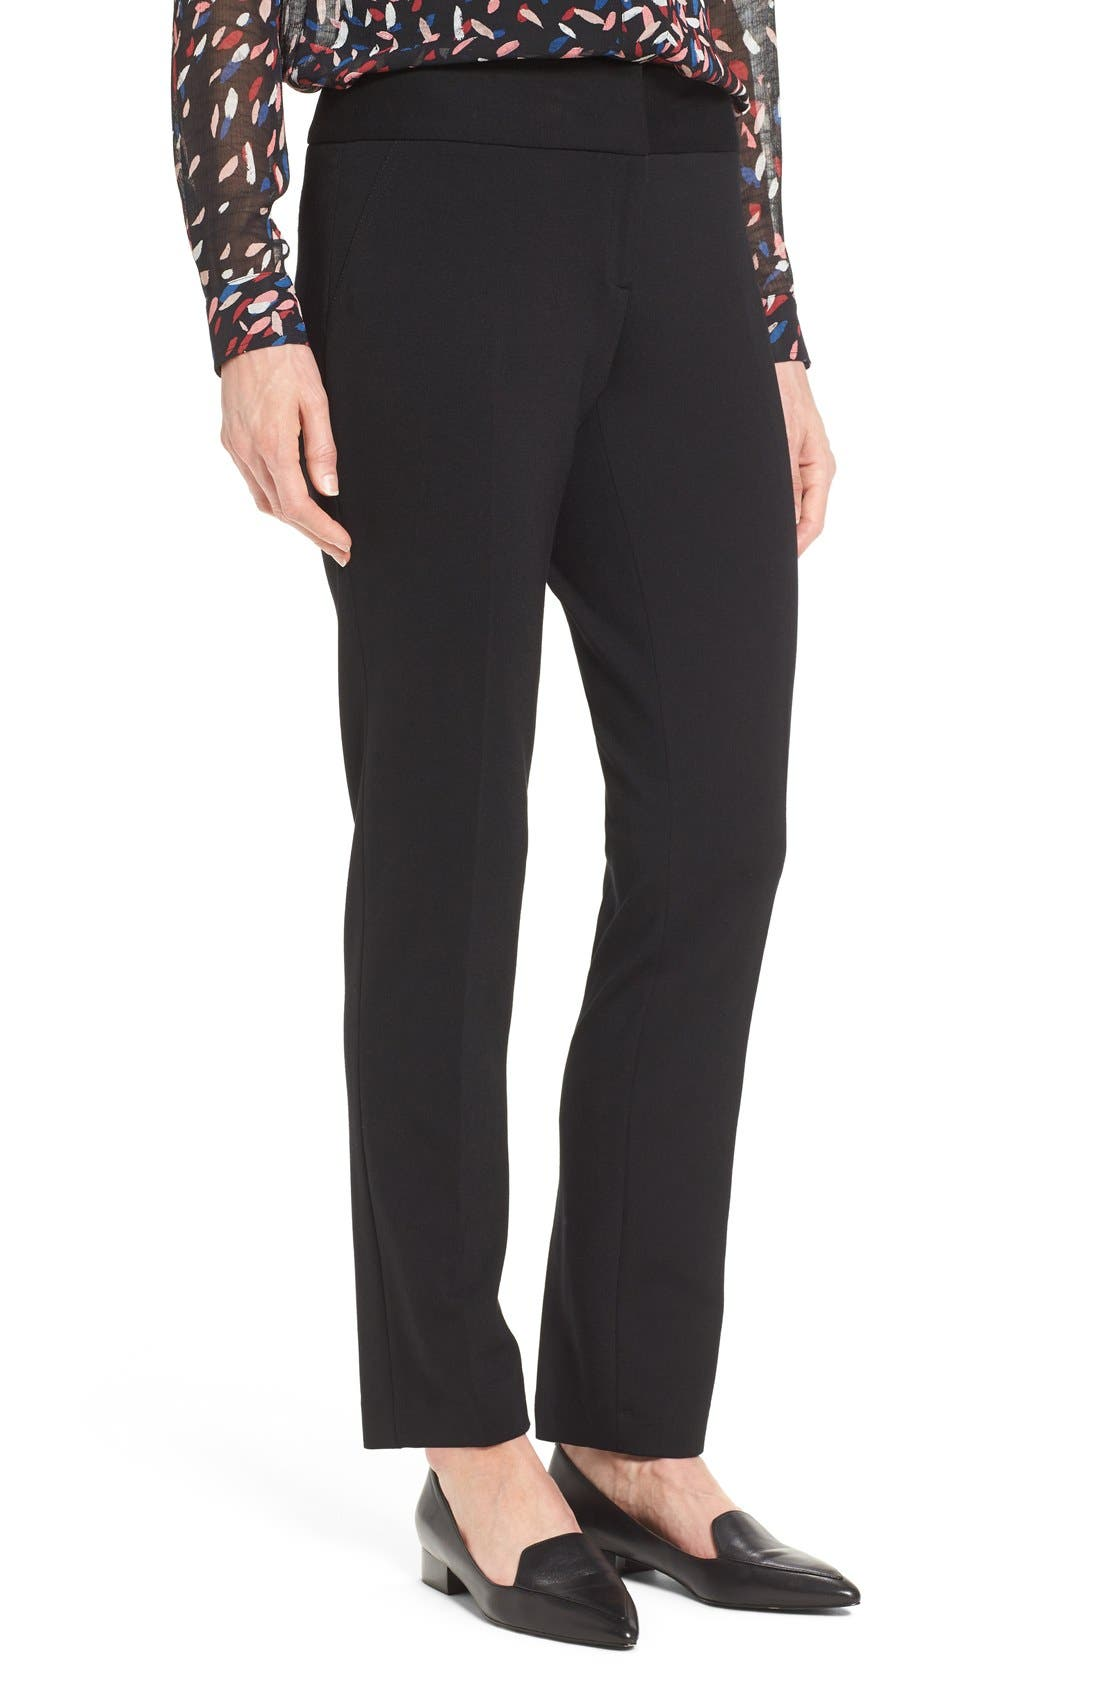 Alternate Image 1 Selected - Vince Camuto Ponte Ankle Pants (Regular & Petite)